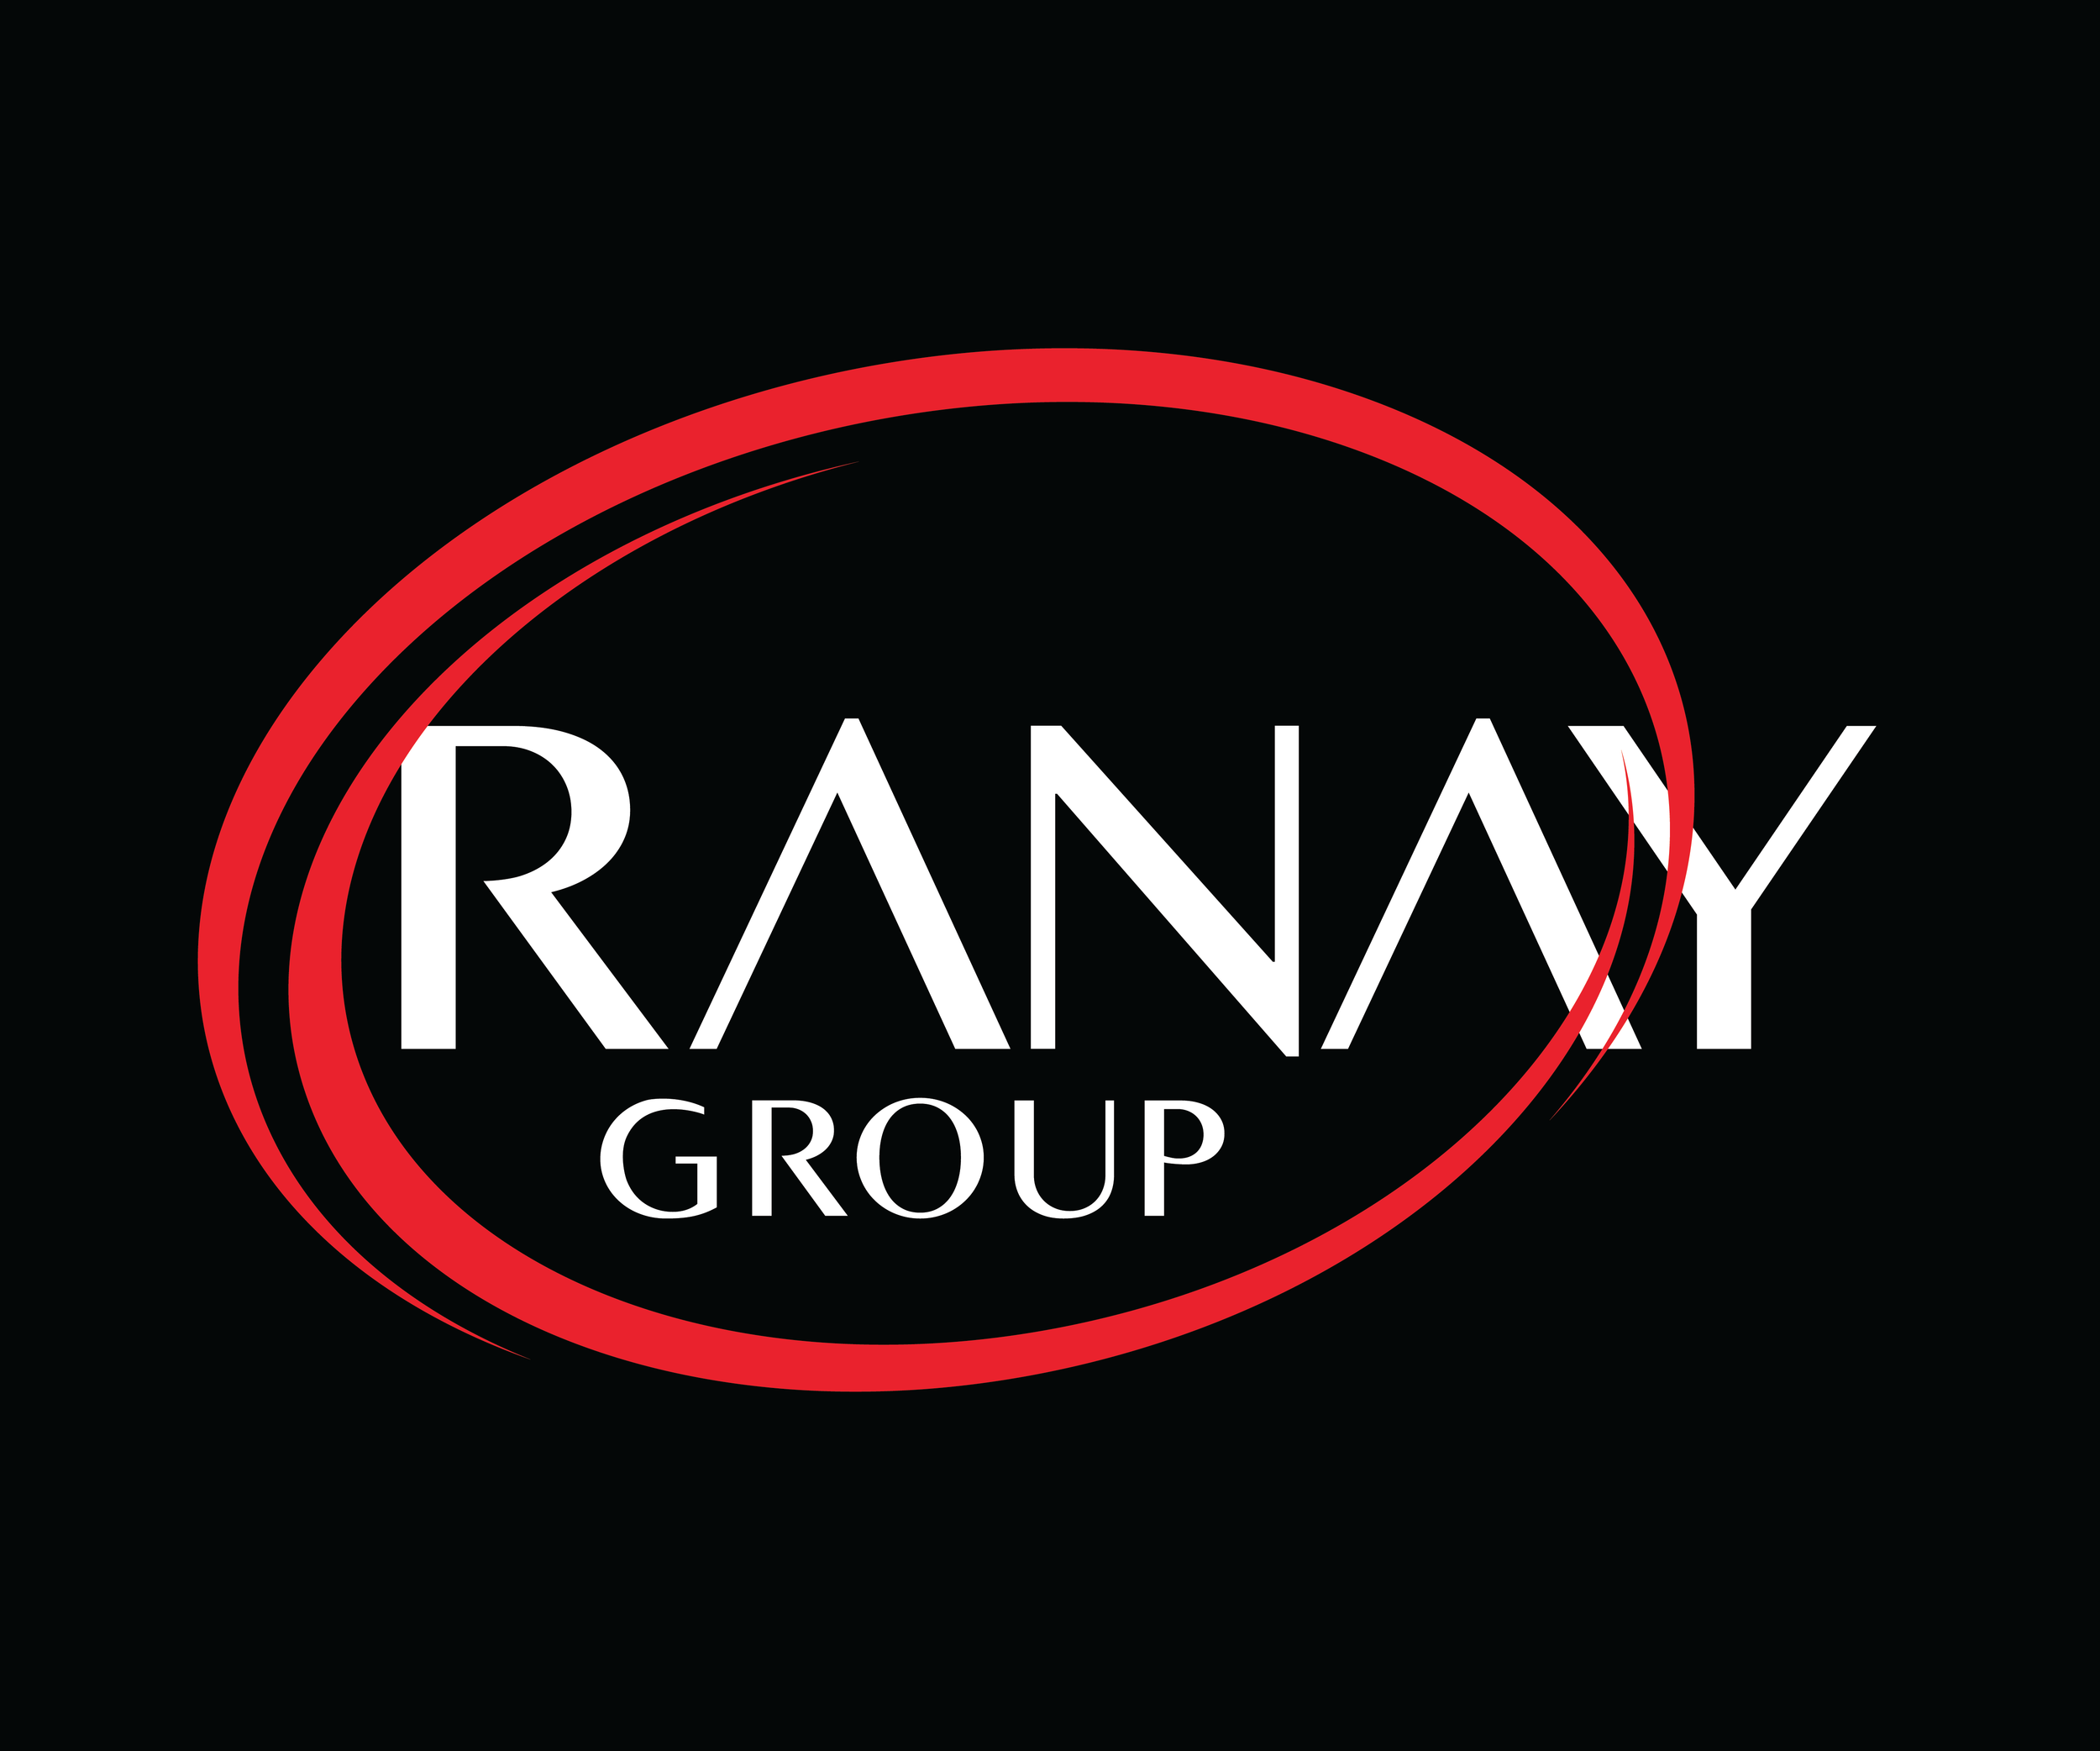 Ranay-Group-Logo-Lady-Lex-Productions-Branding-.png